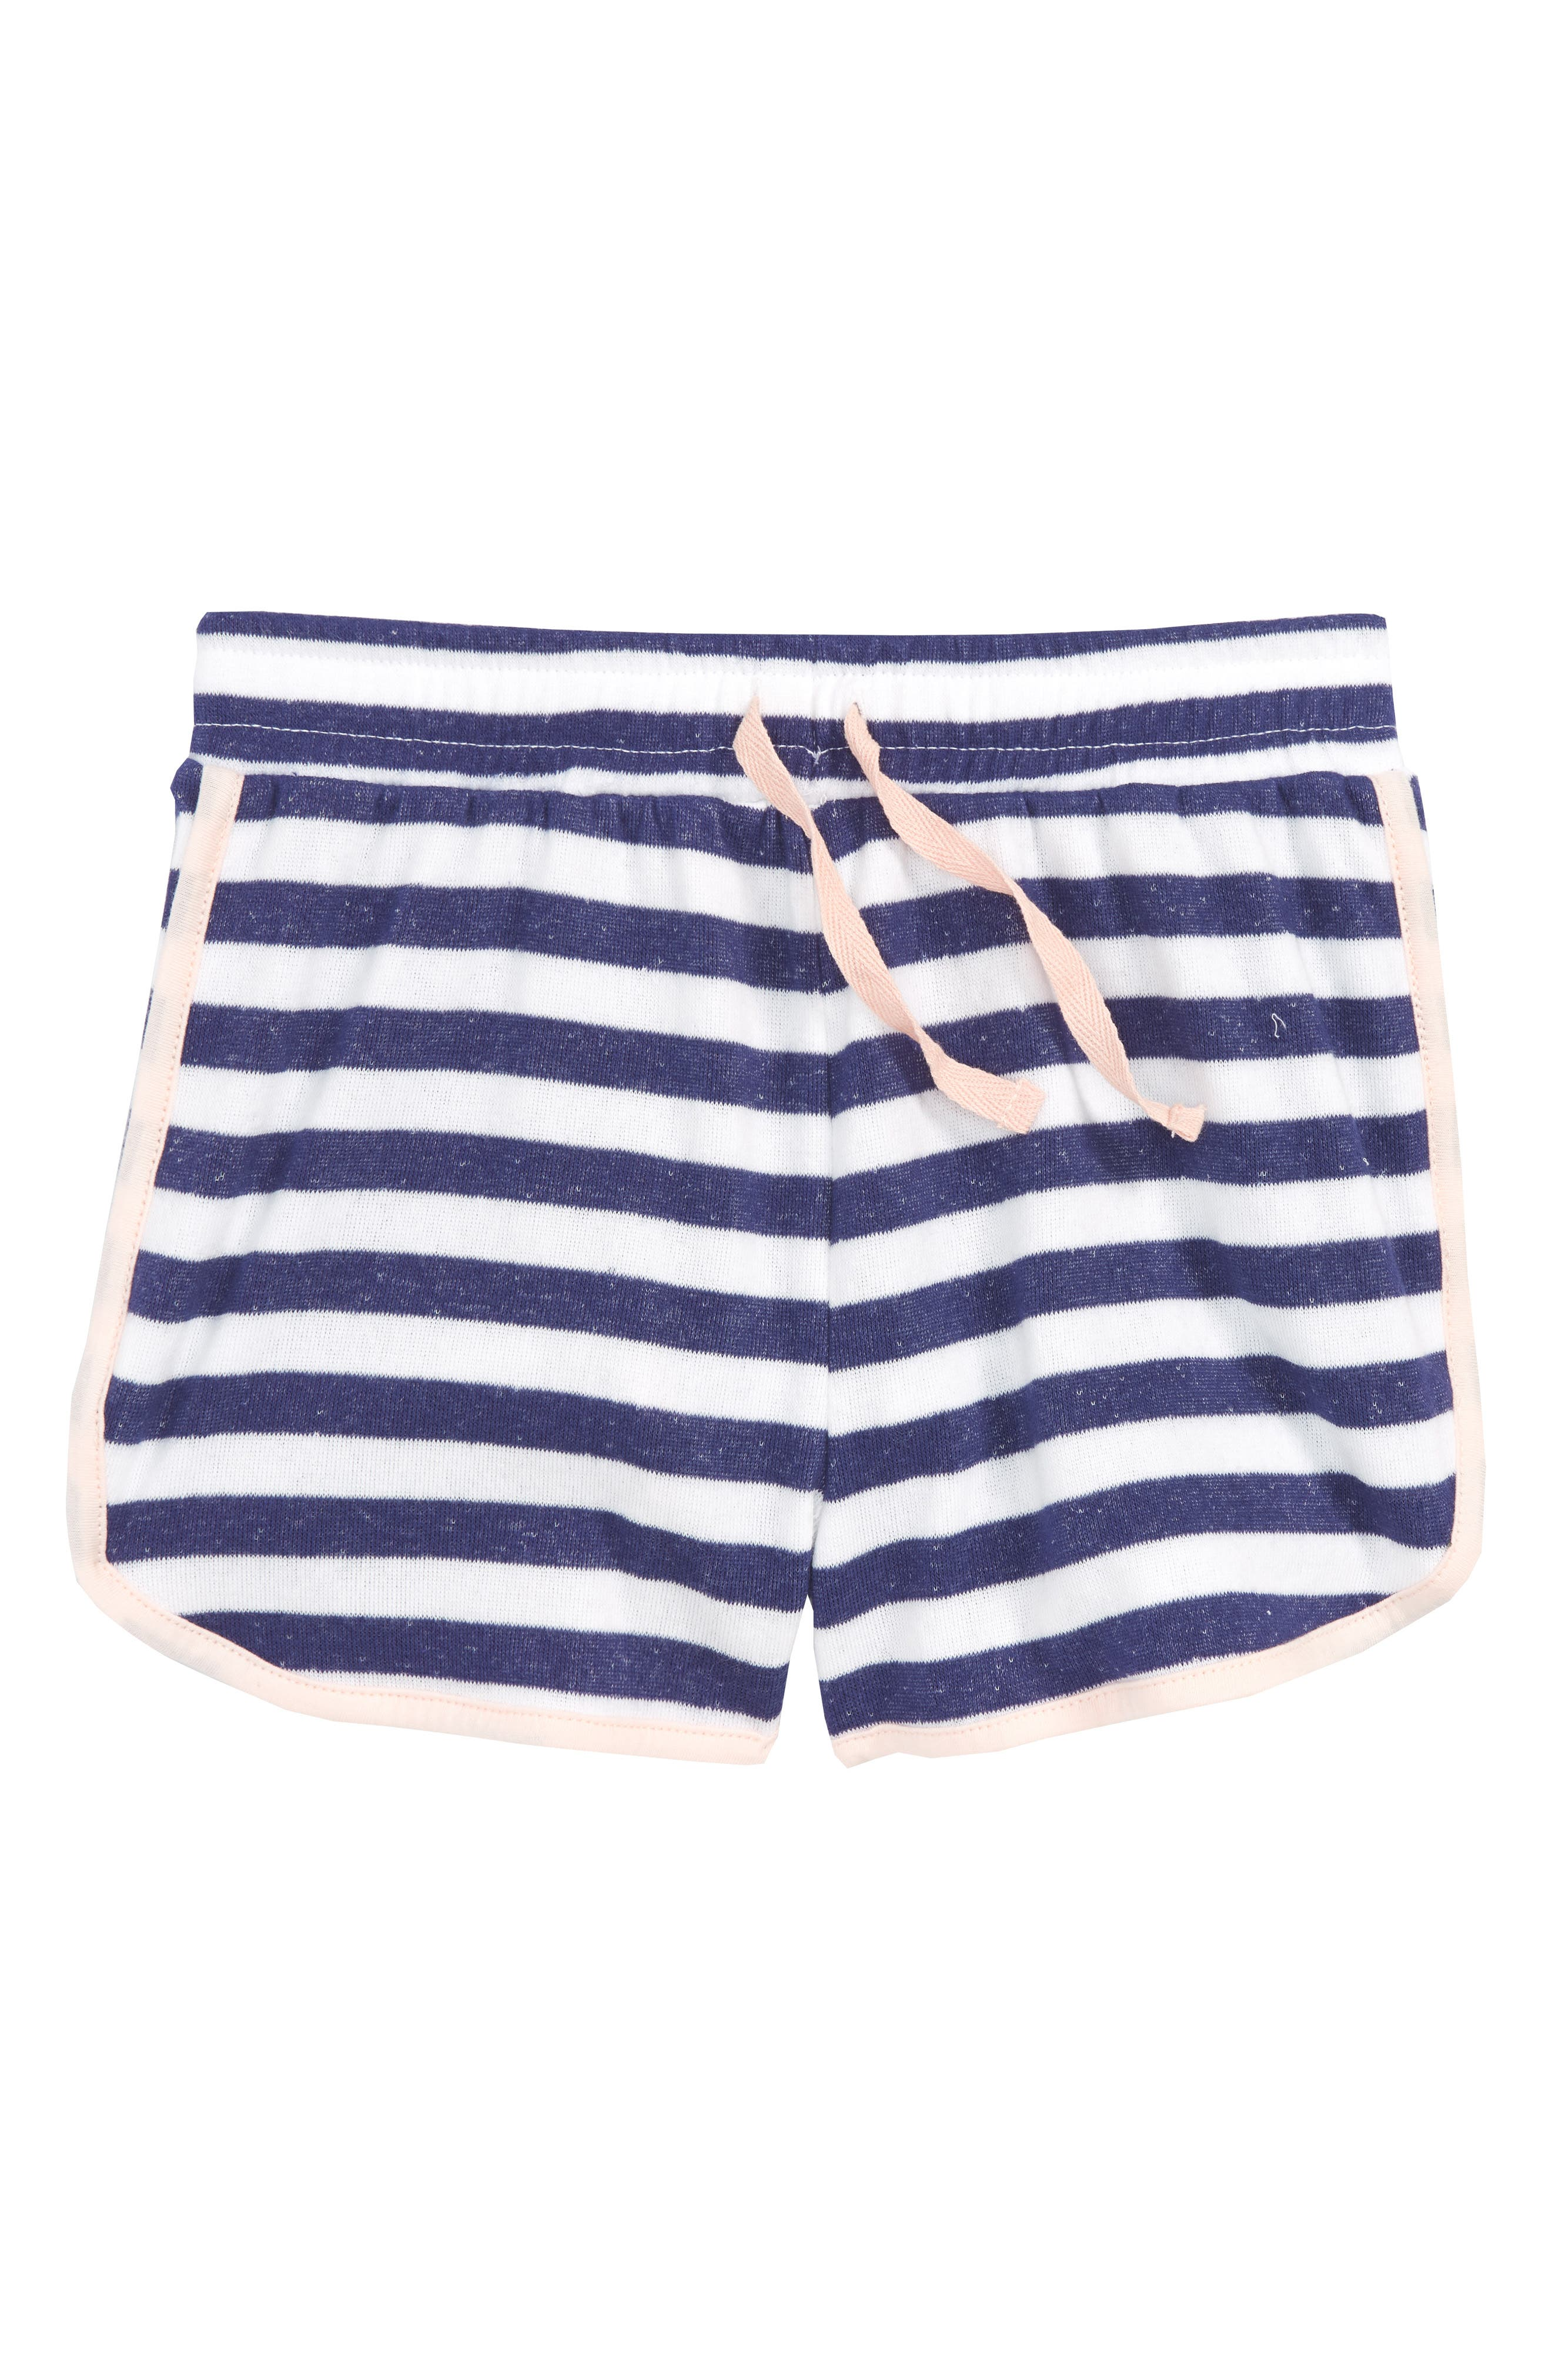 Tucker + Tate Knit Shorts (Toddler Girls, Little Girls & Big Girls)